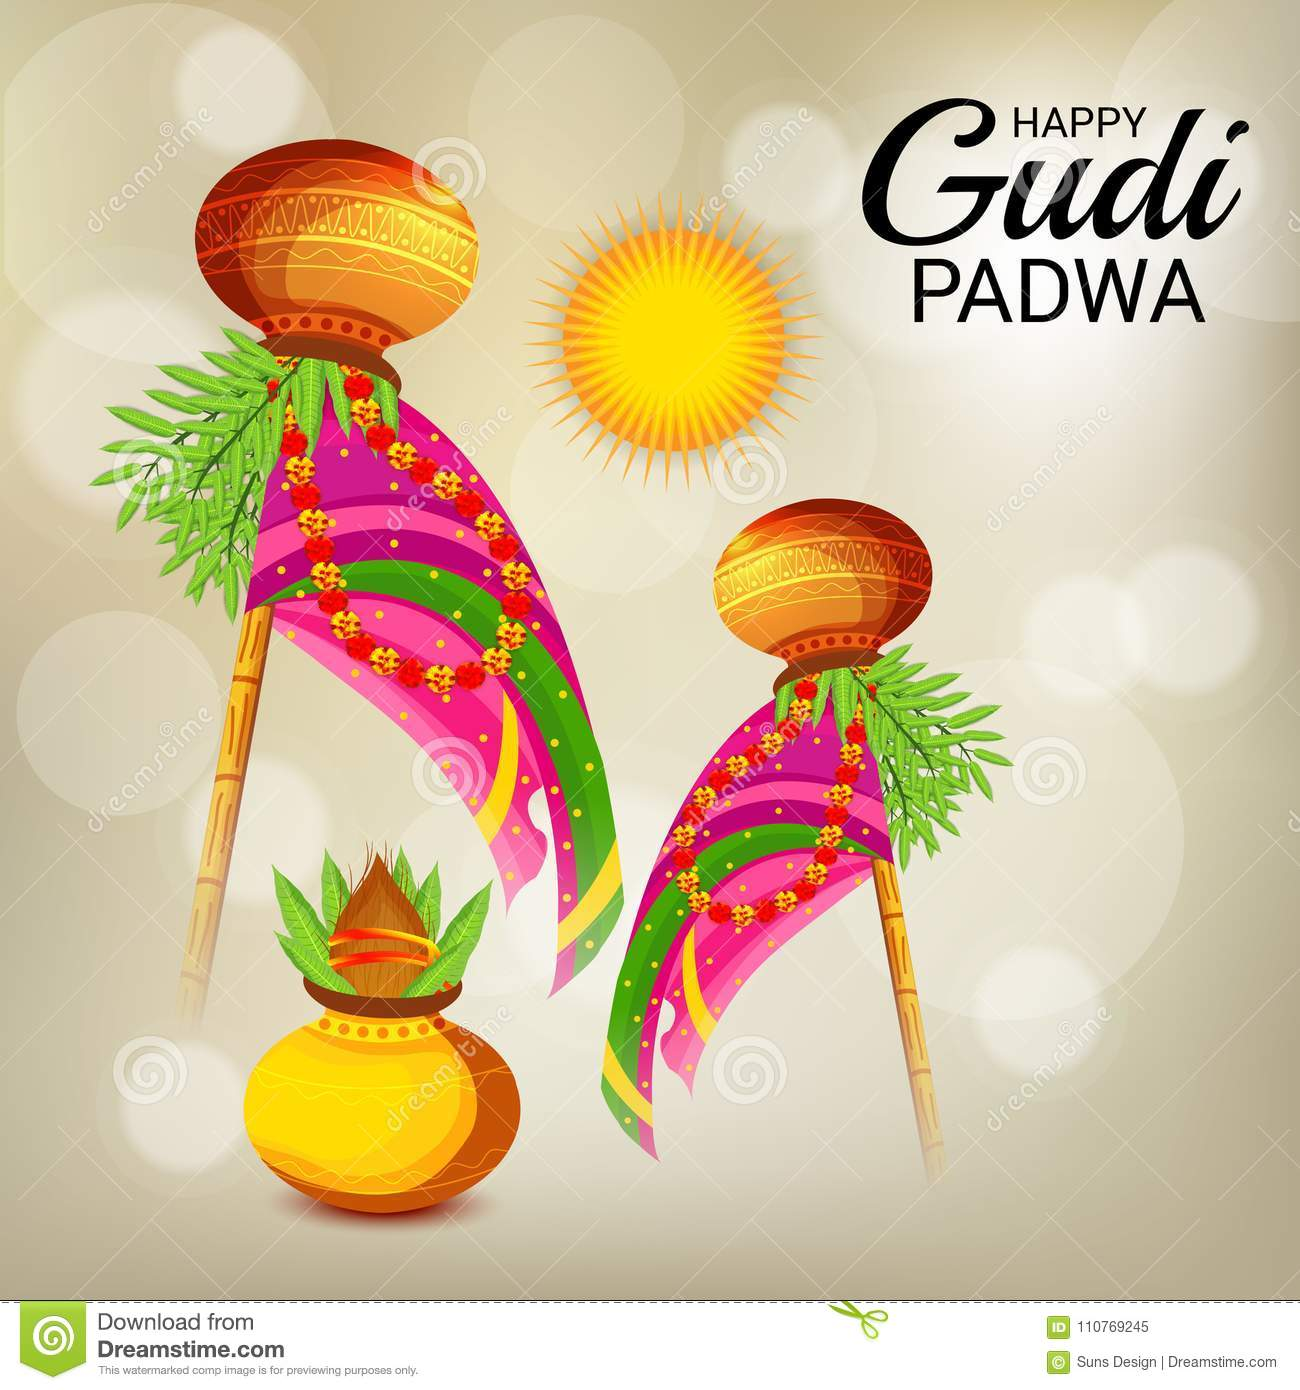 Happy gudi padwa marathi new year stock illustration illustration download happy gudi padwa marathi new year stock illustration illustration of greeting marathi m4hsunfo